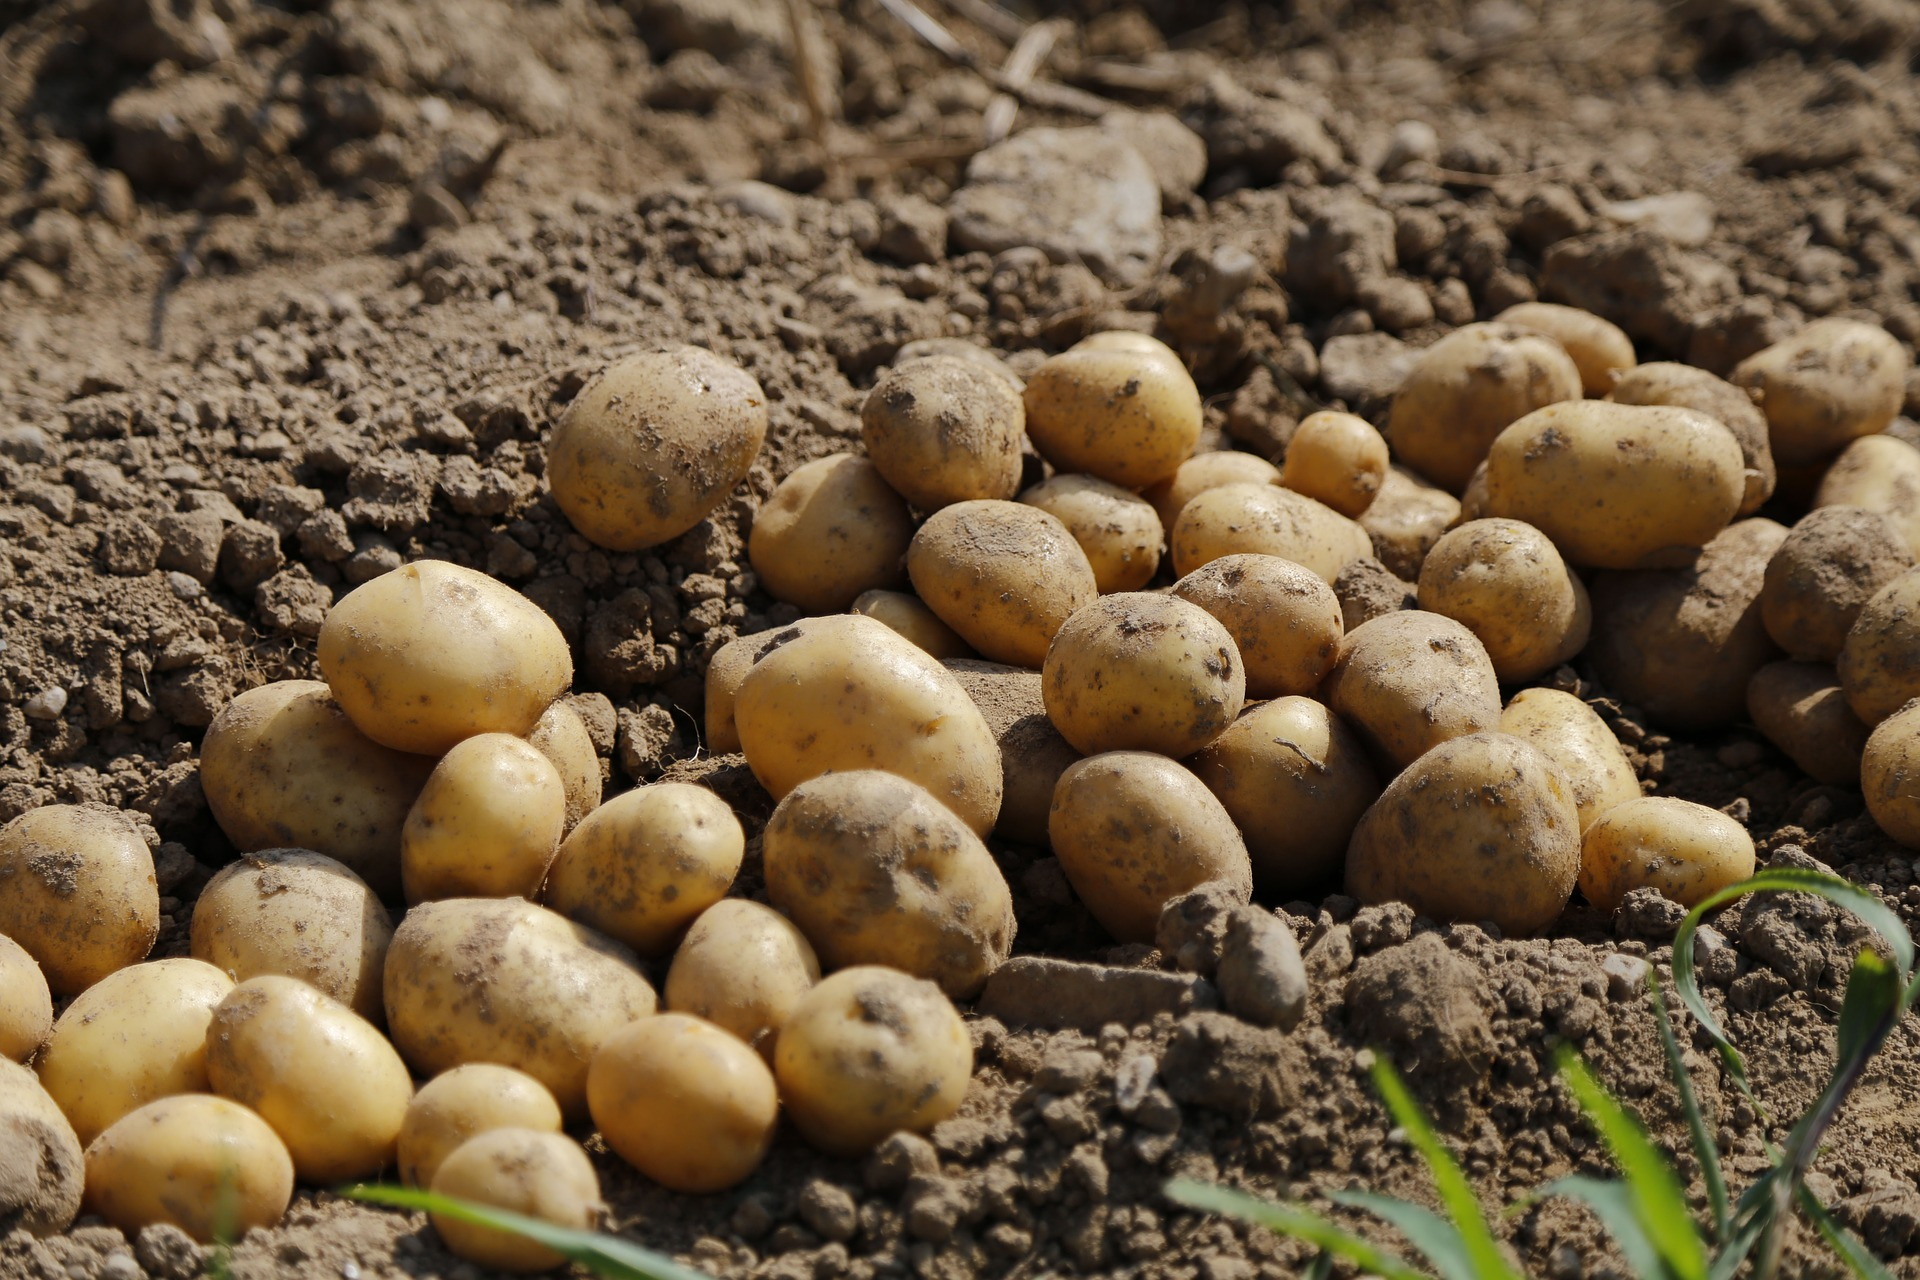 potato-983788_1920-pixabay.jpg